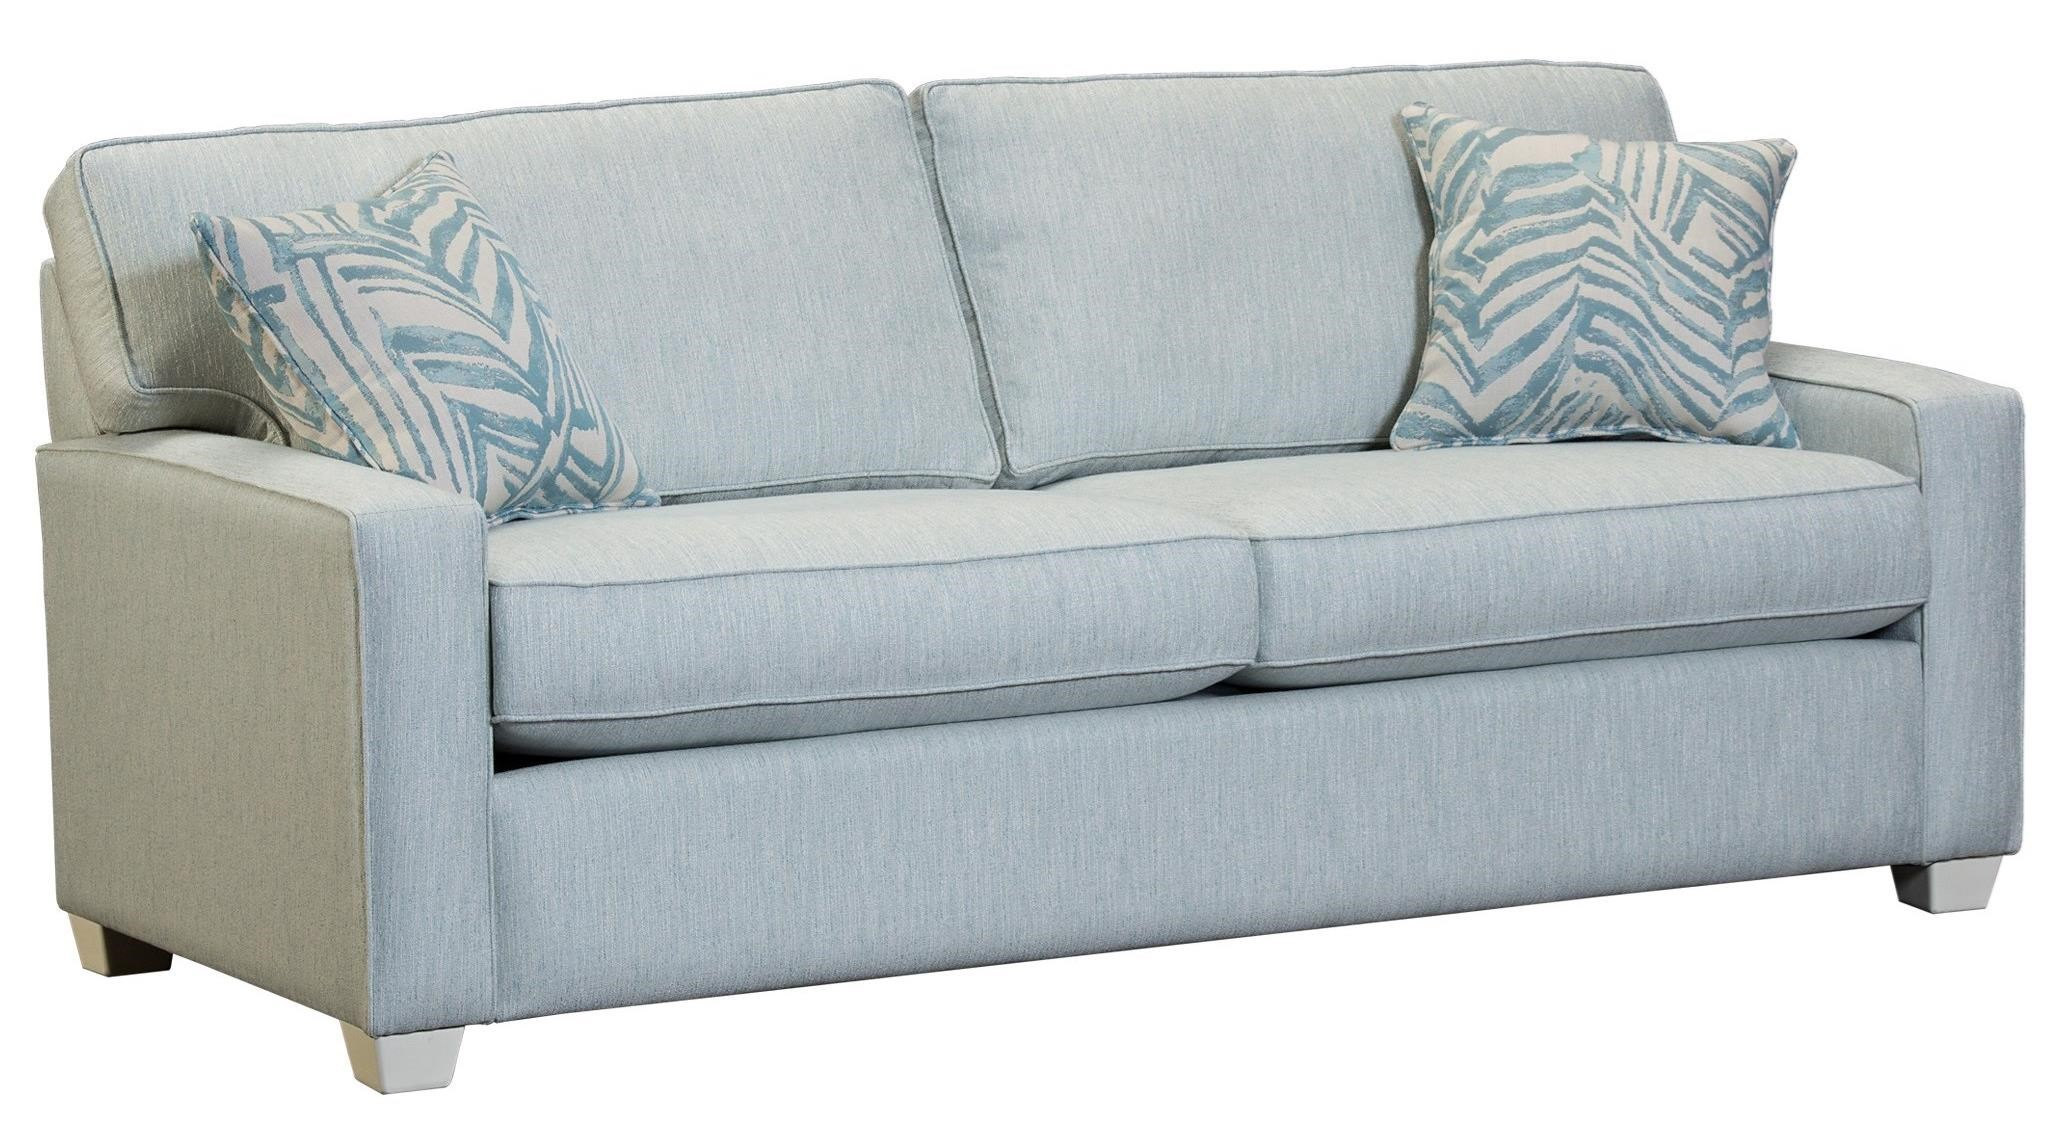 146 Sleeper Sofa by Capris Furniture at Baer's Furniture